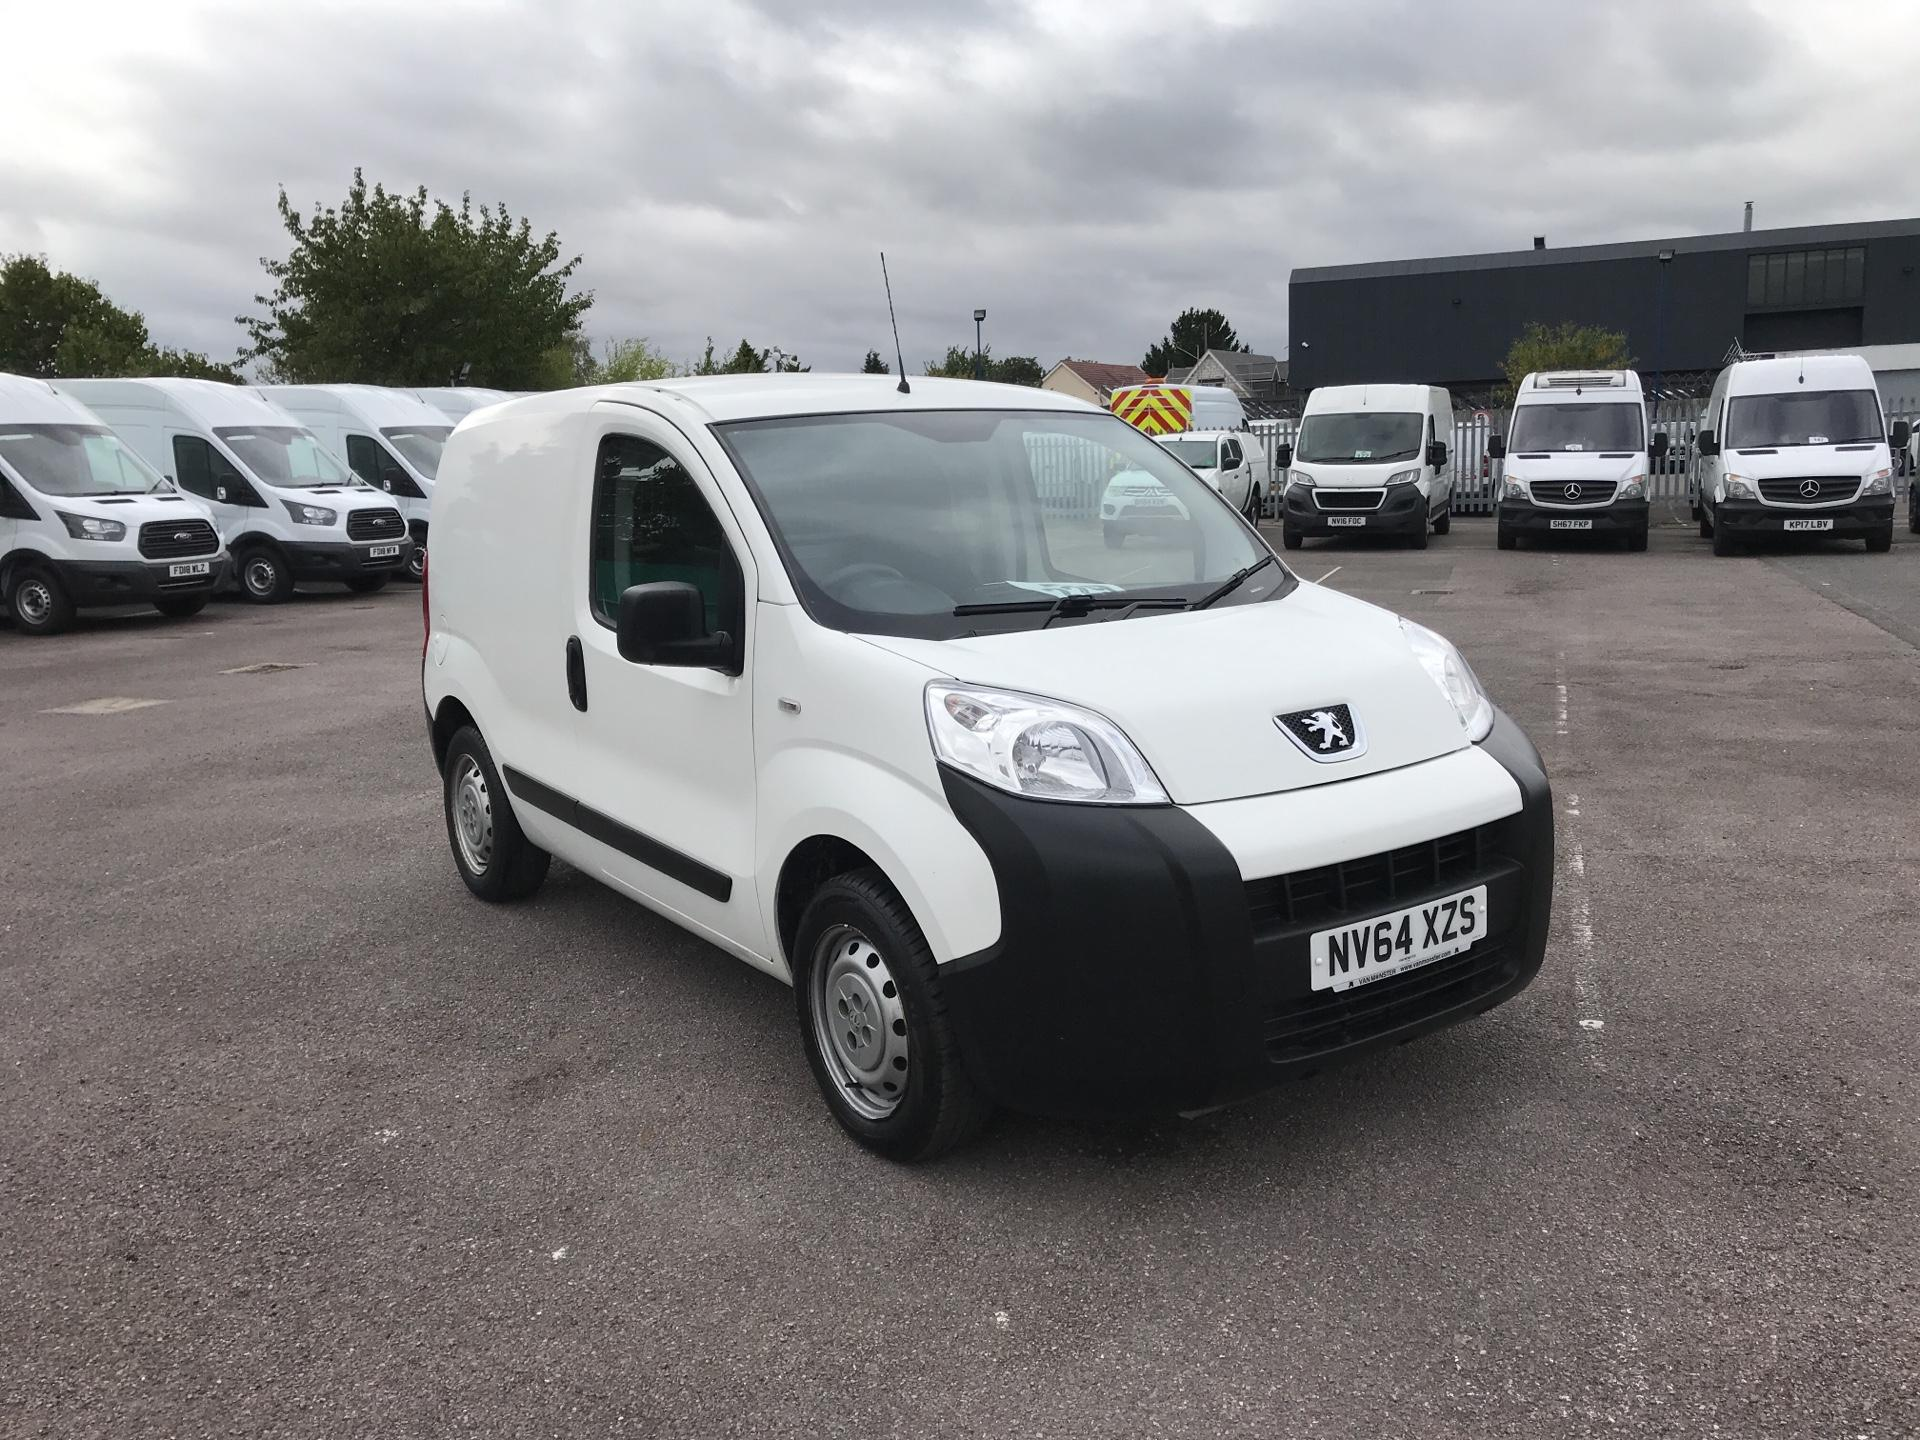 2015 Peugeot Bipper  1.3 HDI 75 S PLUS PACK NON S/S EURO 5 *VALUE RANGE VEHICLE CONDITION REFLECTED IN PRICE* (NV64XZS)